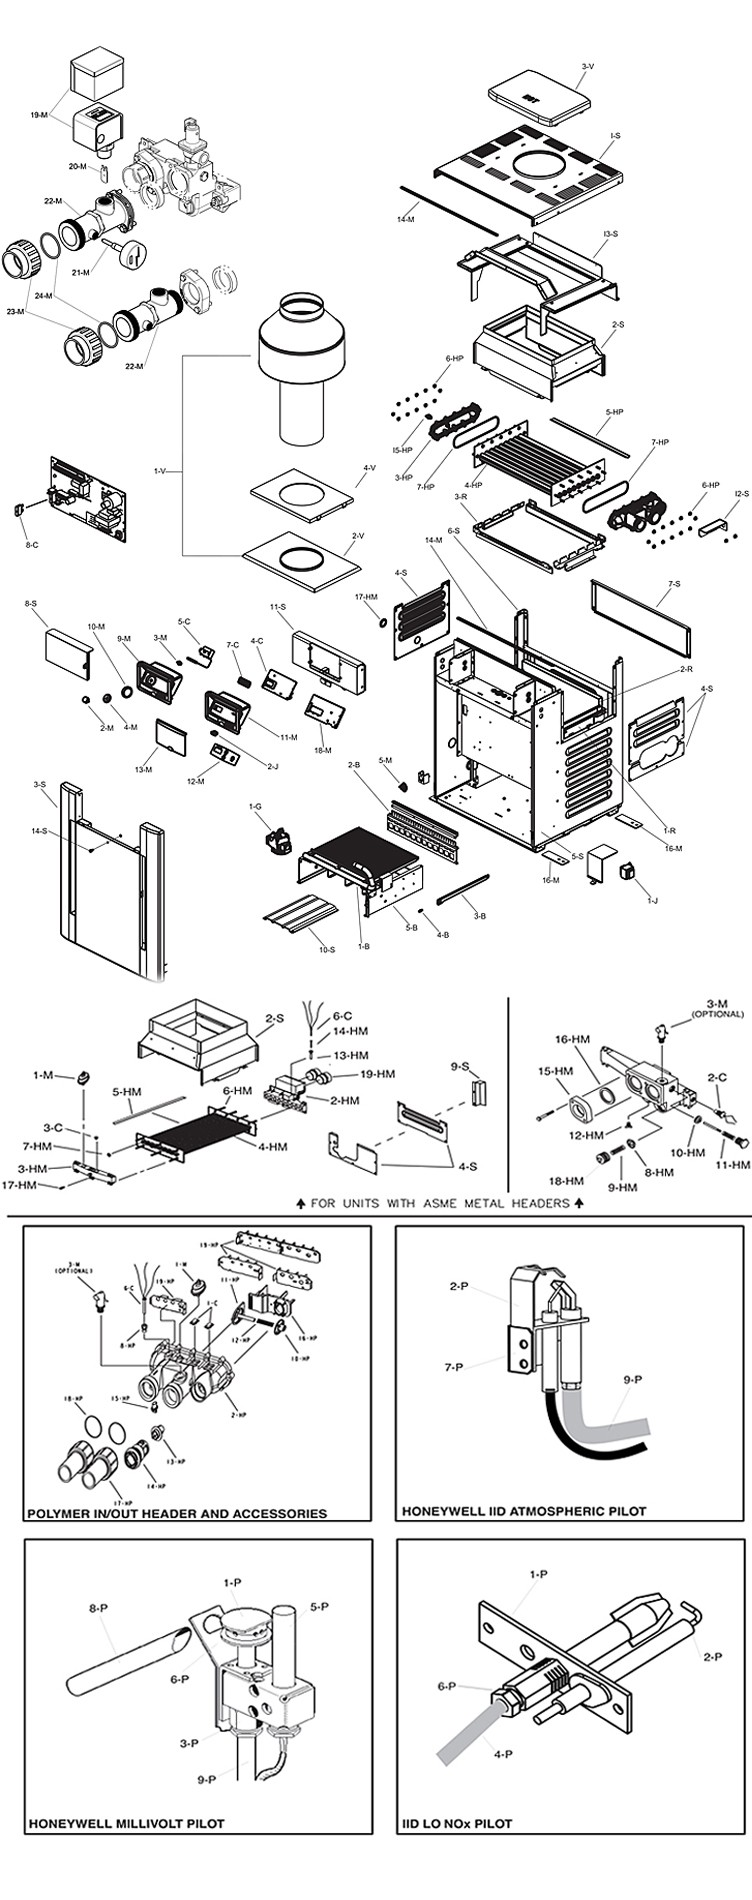 Raypak Digital Propane Gas Pool Heater 206k BTU | Electronic Ignition | High Altitude #59 3000-5000 Feet | P-R206A-EP-C 009232 P-M206A-EP-C Parts Schematic